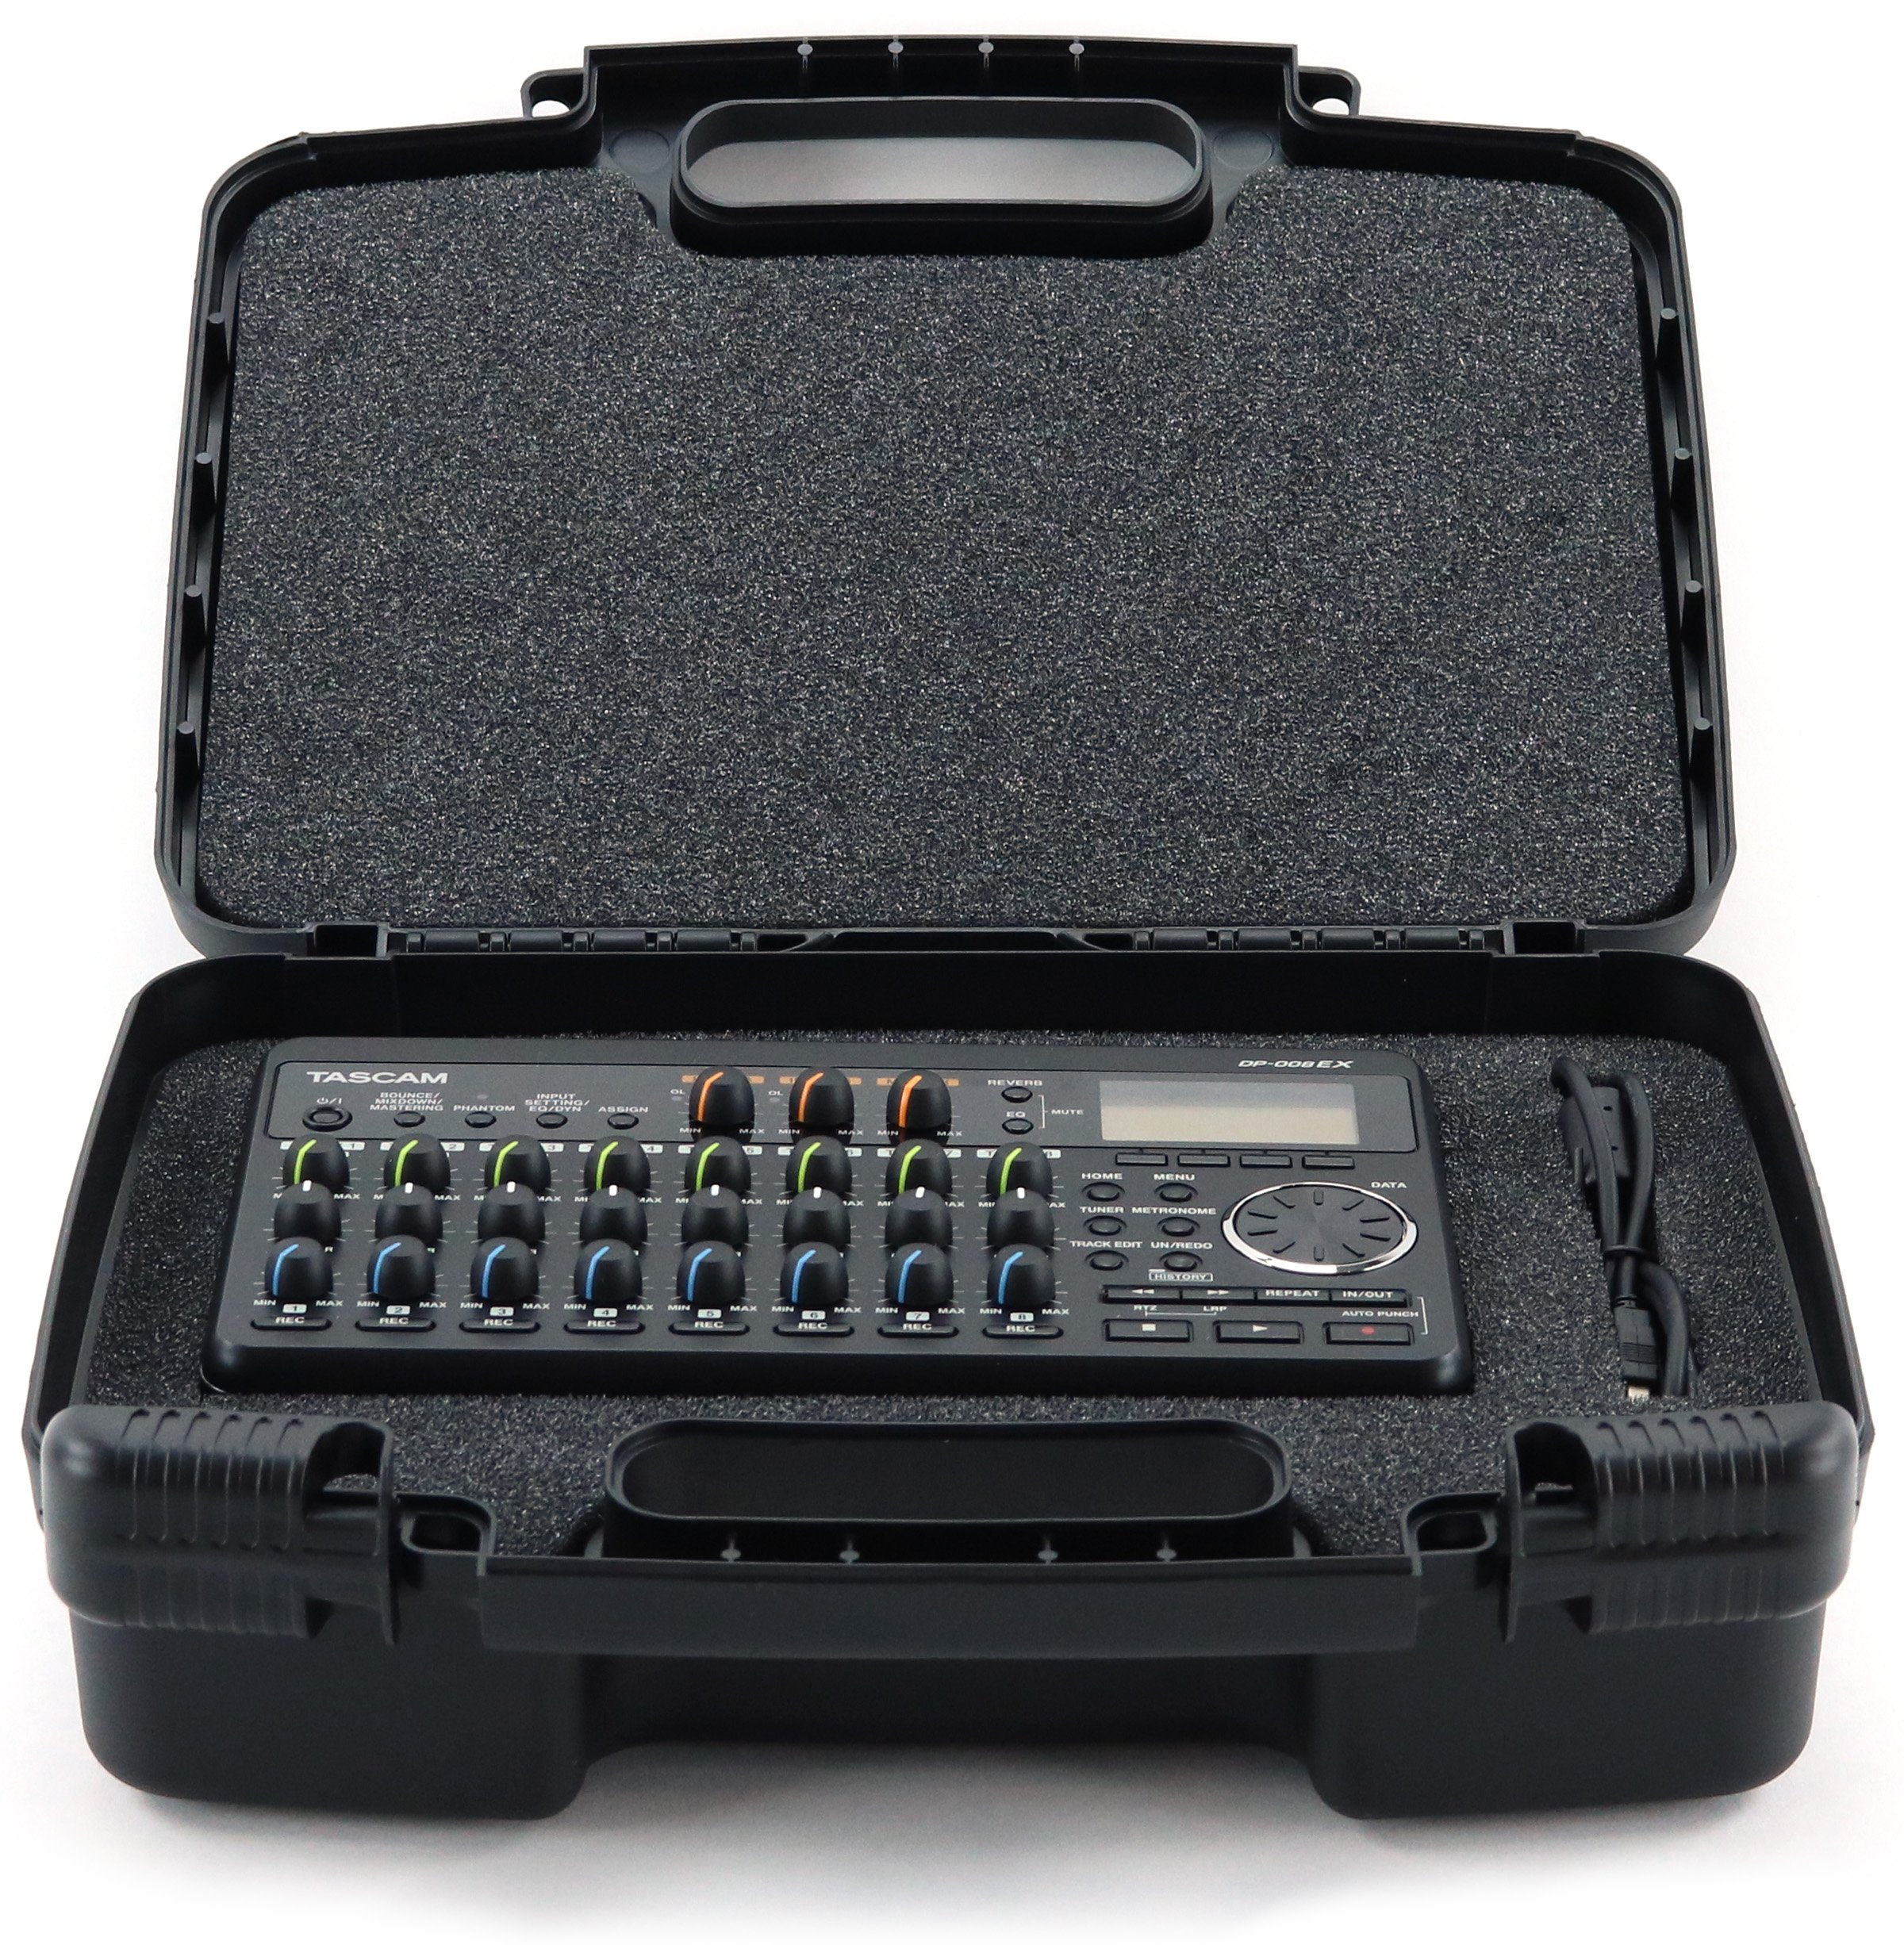 Life Made Better Storage Organizer - Compatible with TASCAM Dp-008ex, DP-006 Digital Pocket Studio Multi-Track Recorders And Accessories- Durable Carrying Case - Black